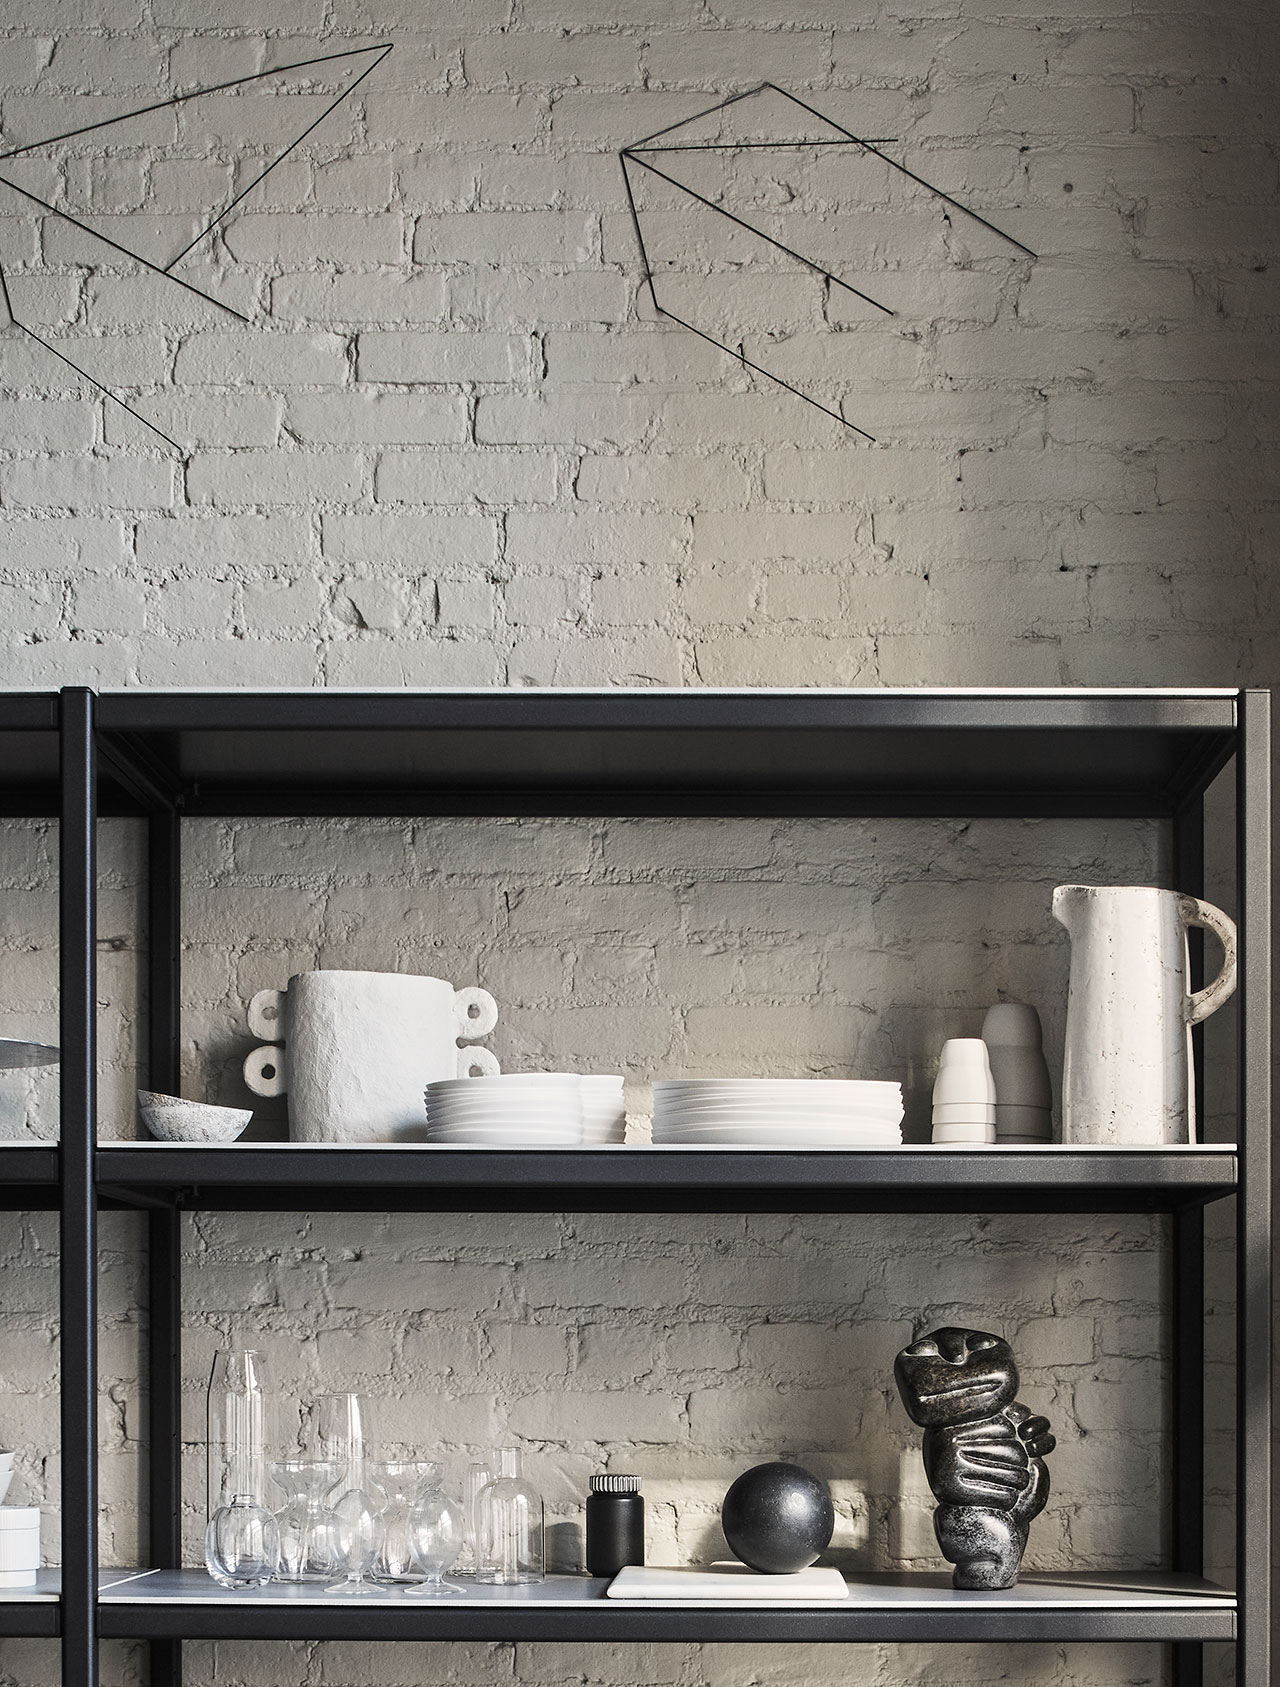 """Photography by Adrian Gaut.Styling by Colin King. © Vipp Featured:Vipp Tall Racks, Vintage glass, Vipp ceramics, Black solid iron sphere by artist Sofie Østerby, Metal art installations above the rack by Lawrence Kenny, Farrow & Ball """"Drop Cloth"""" paint."""